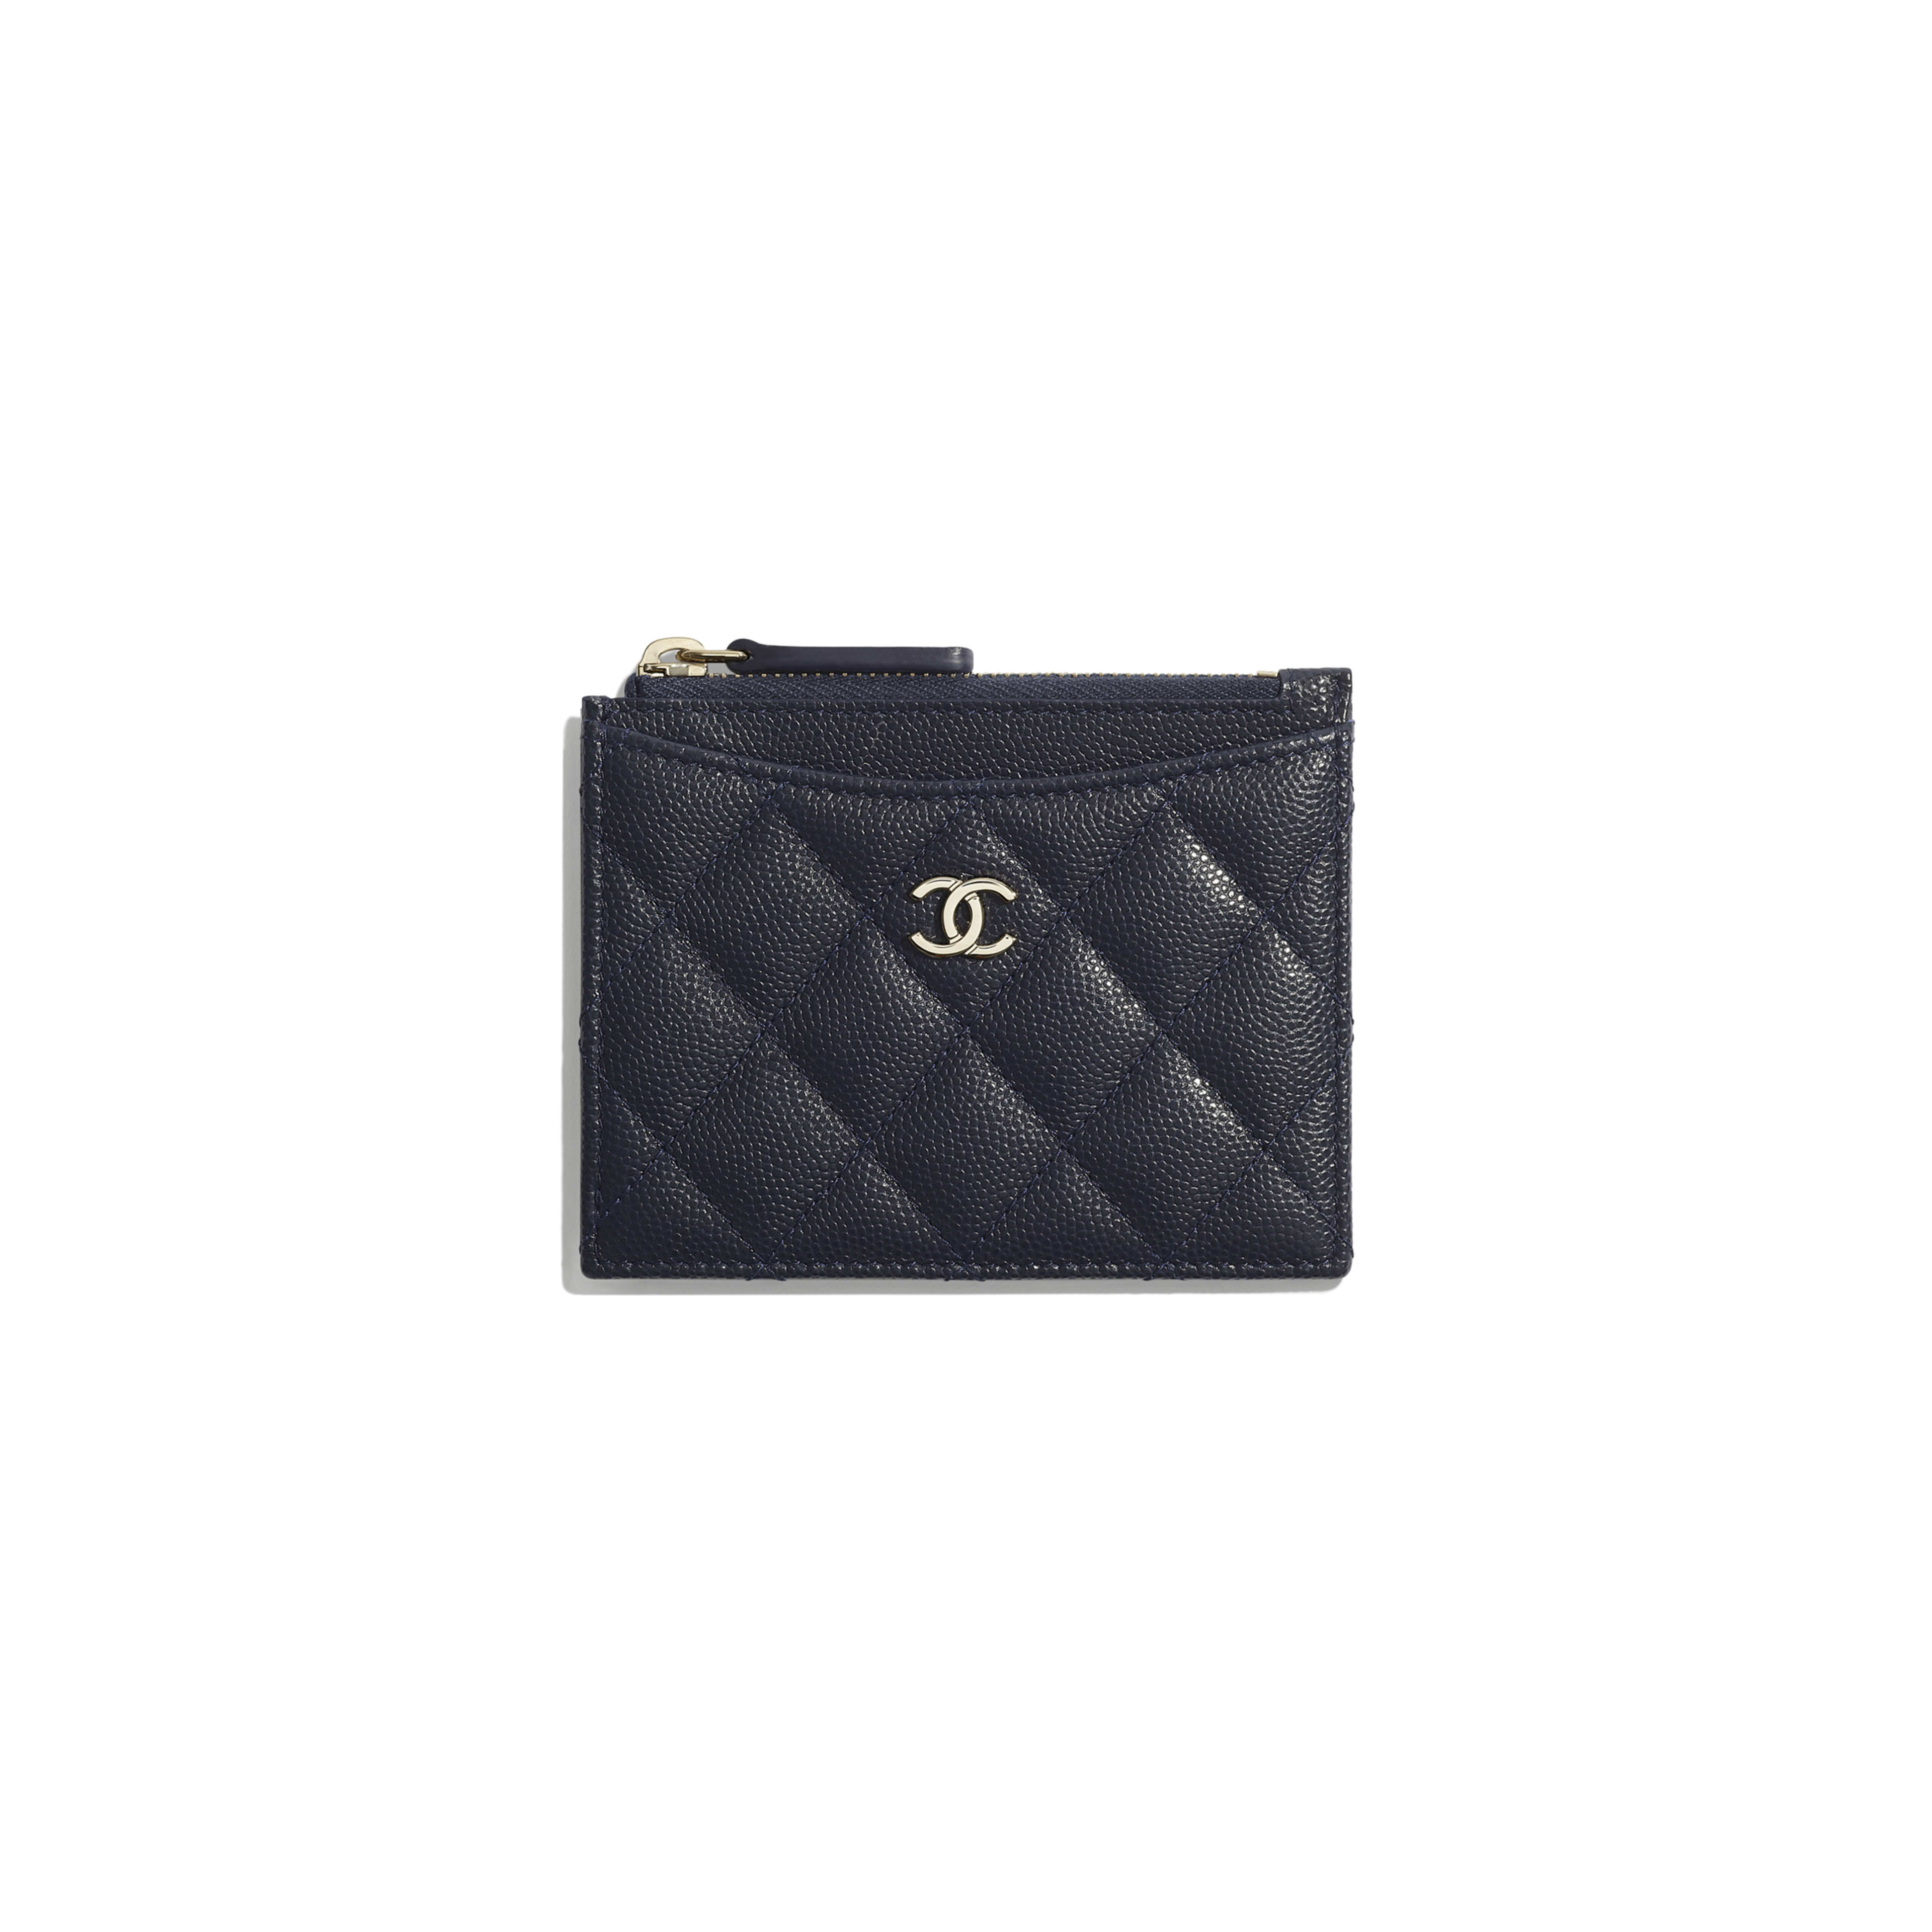 Classic Card Holder - Navy Blue - Grained Calfskin & Gold-Tone Metal - Default view - see full sized version